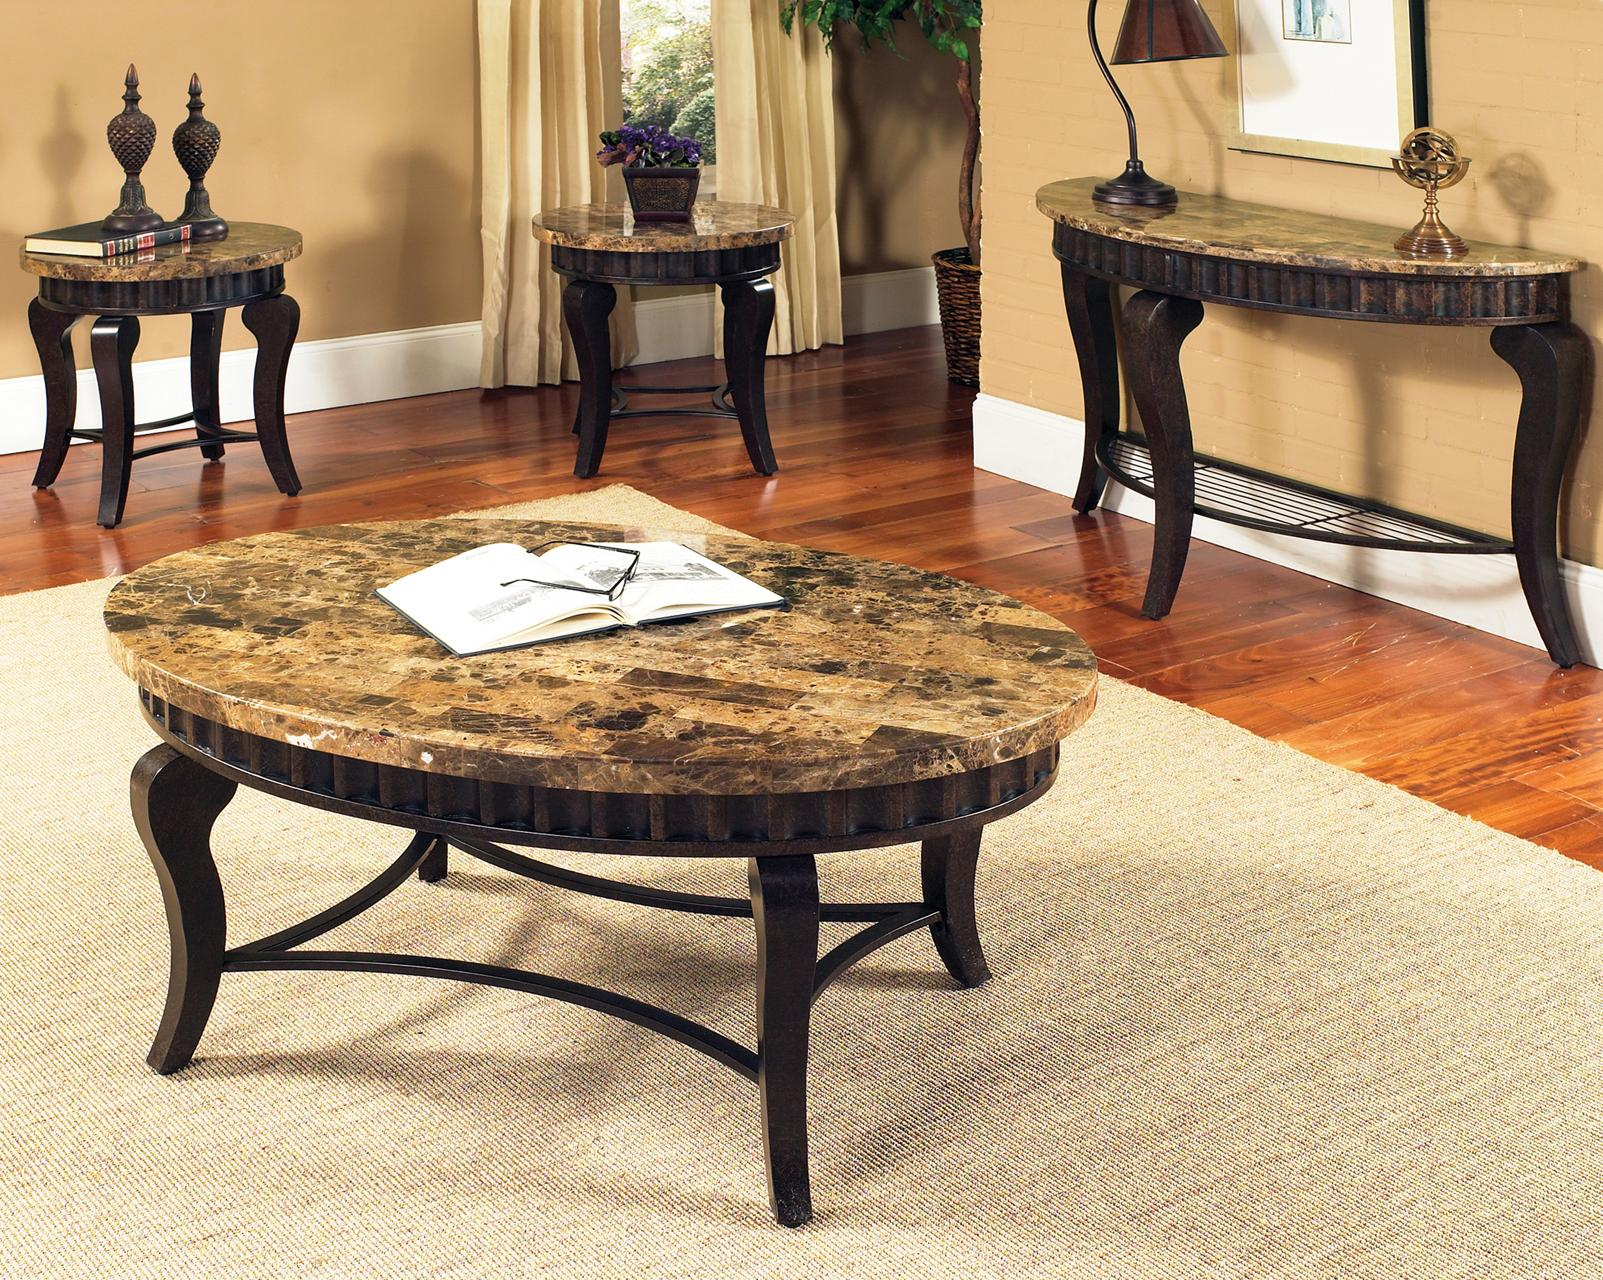 Steve Silver Hamlyn 5 Piece Faux Marble Top Dining Table Set | Northeast Factory Direct | Dining 5 Piece Set Cleveland Eastlake Westlake Mentor Medina ... & Steve Silver Hamlyn 5 Piece Faux Marble Top Dining Table Set ...